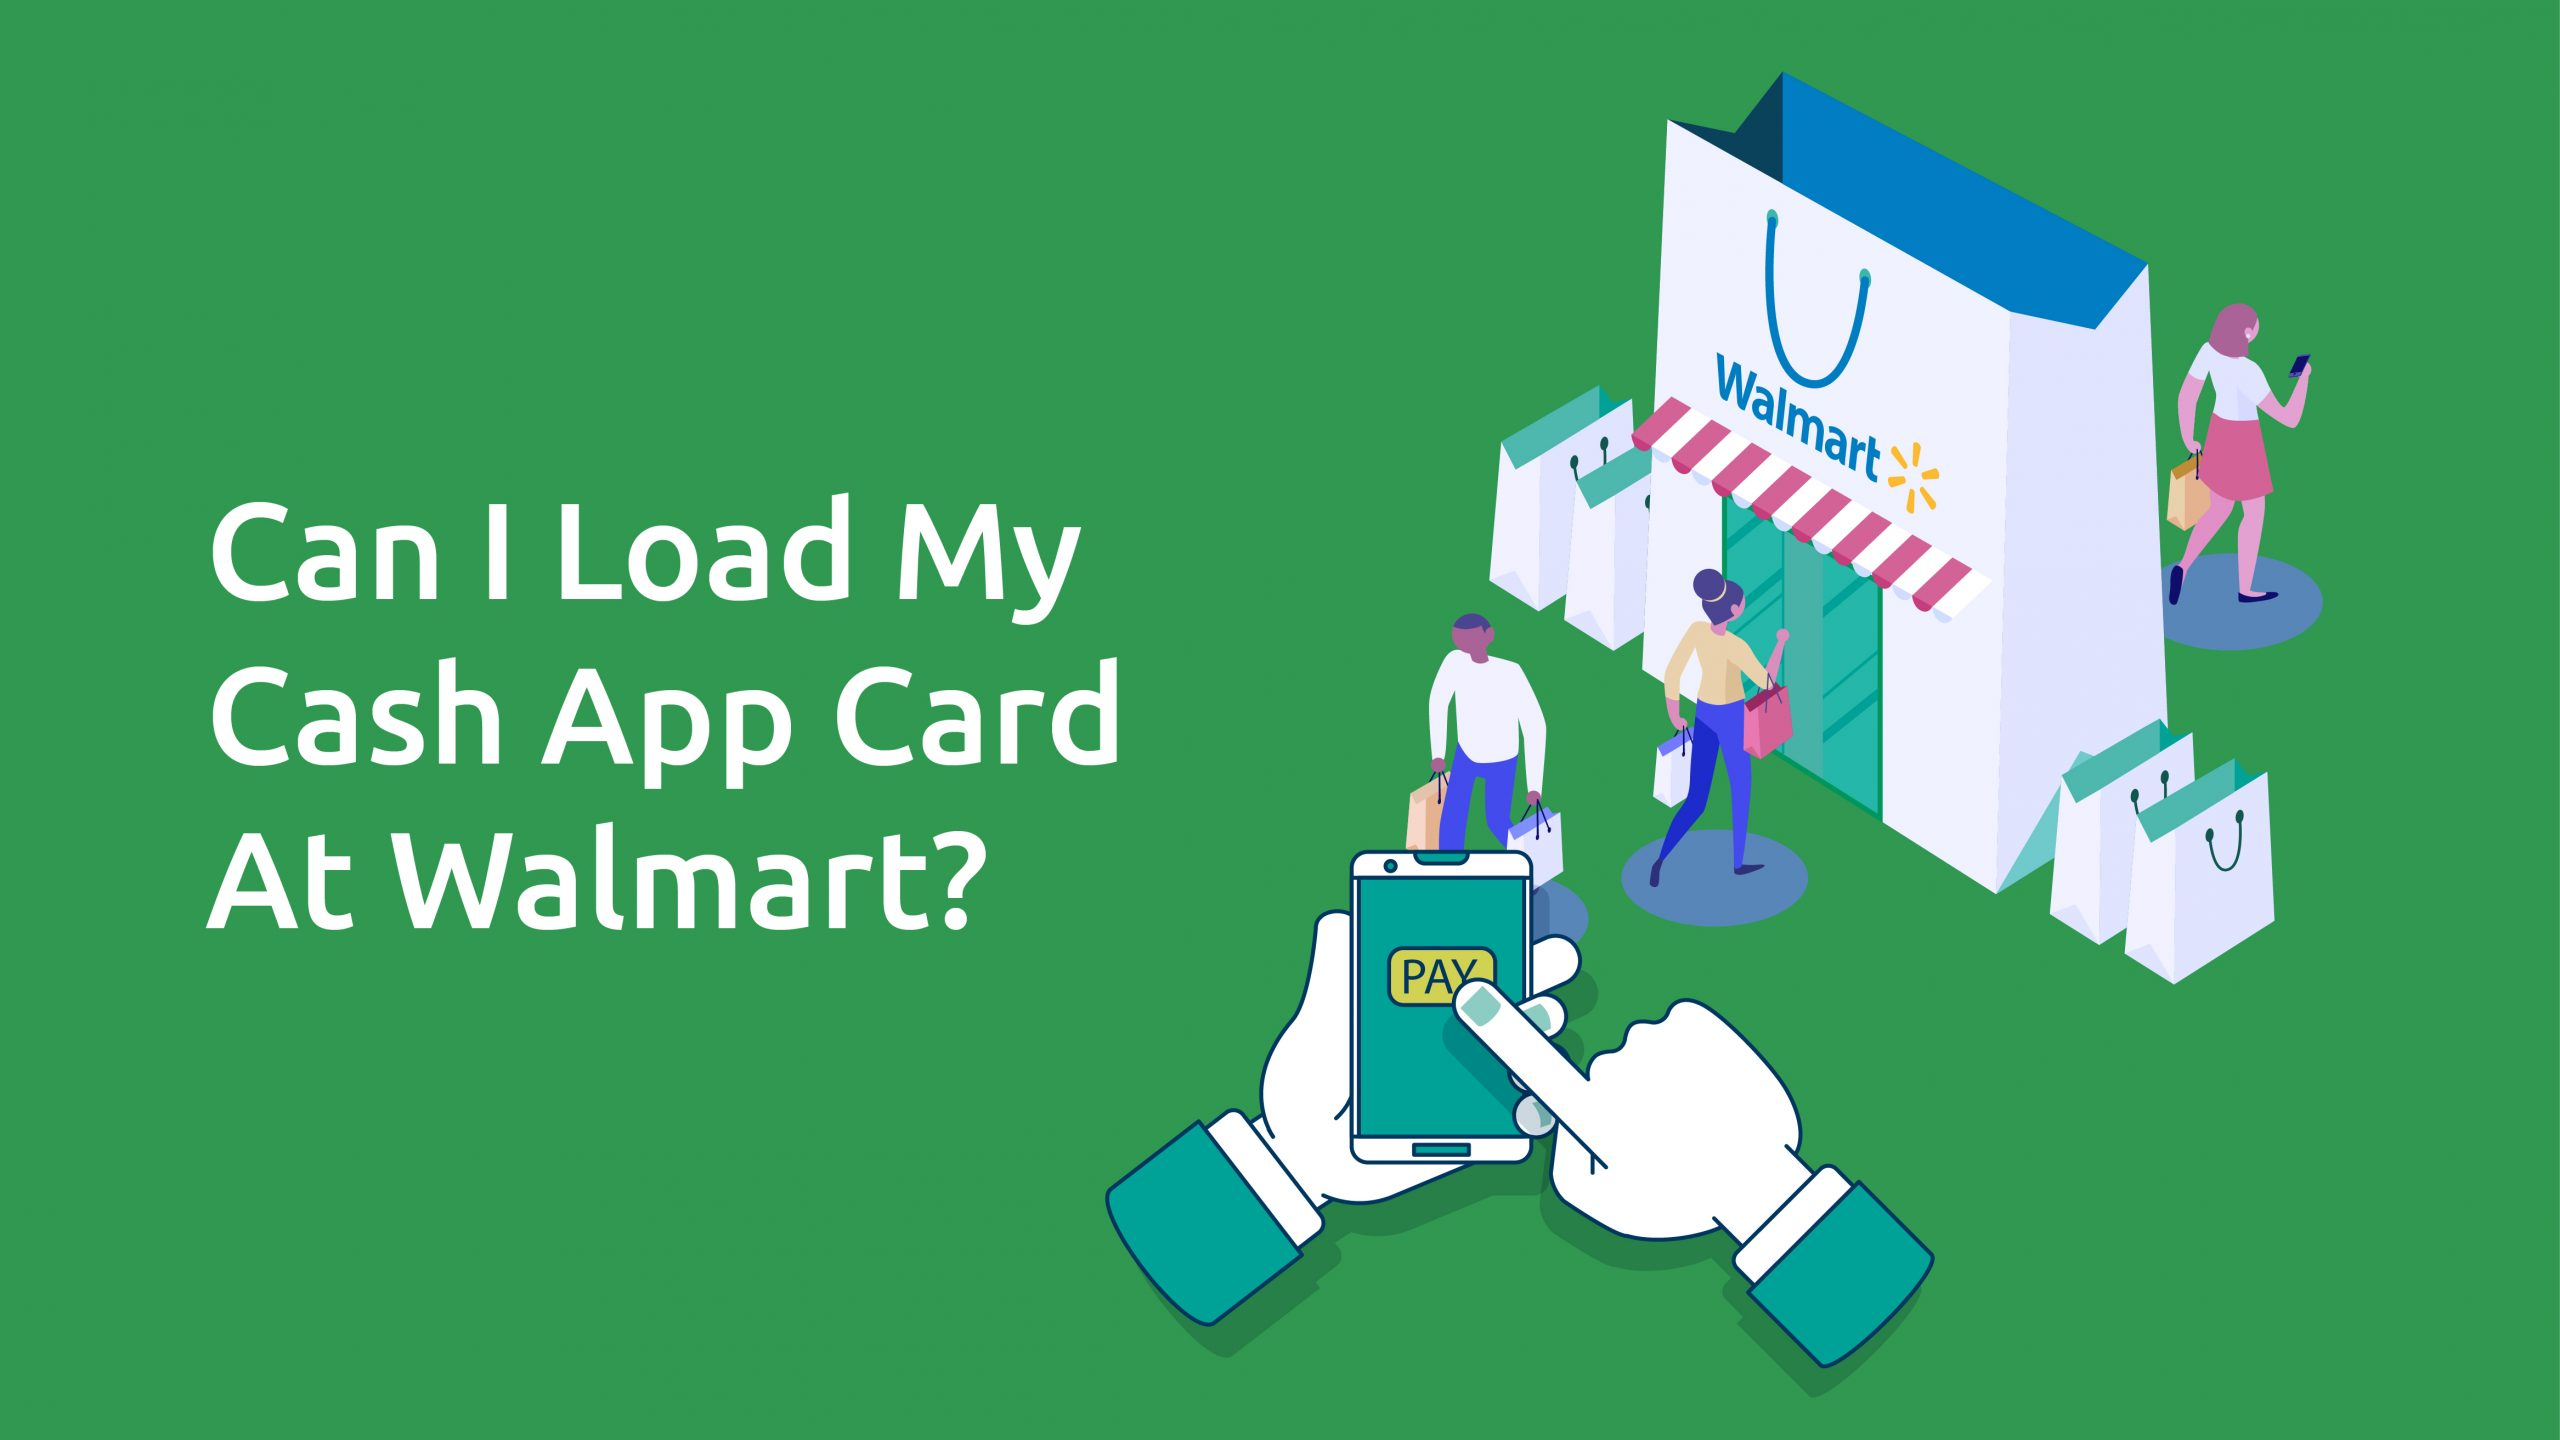 Can I Load My Cash App Card at Walmart?